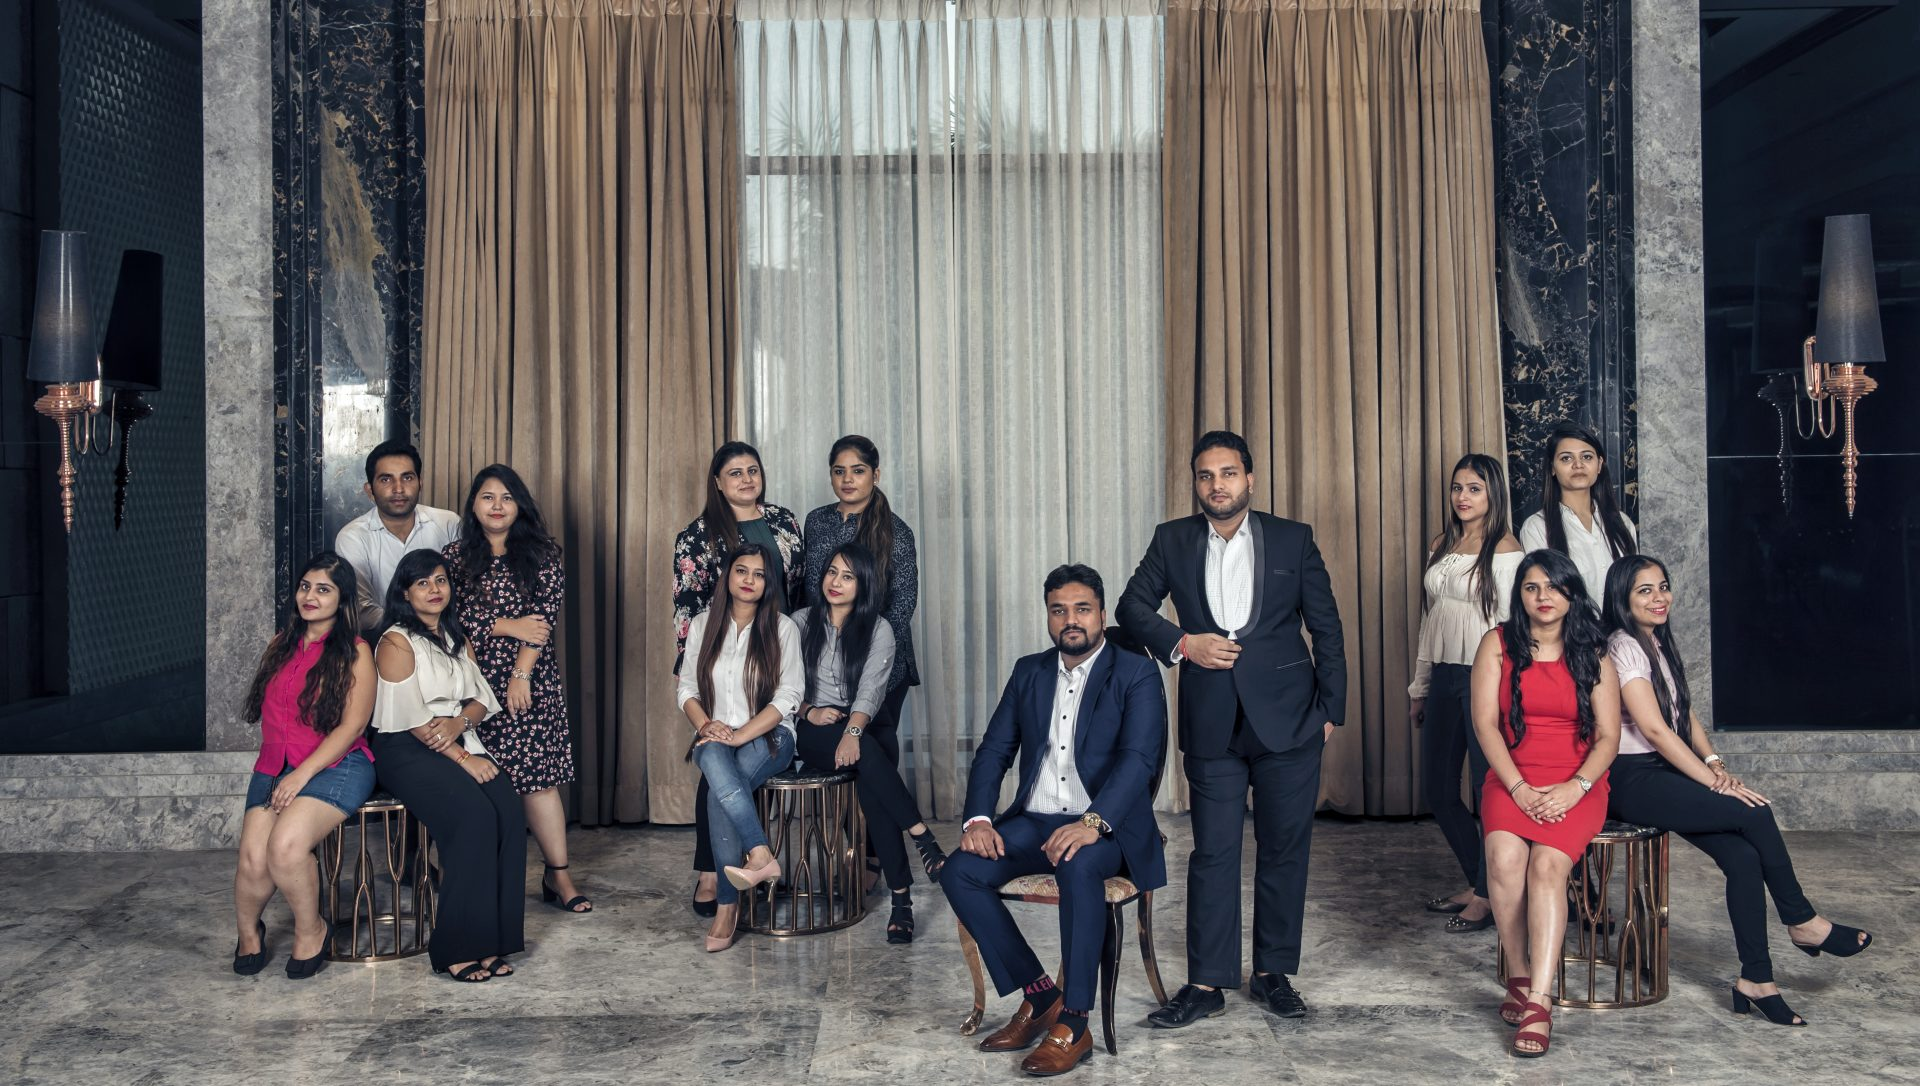 Acanthus' team of architects, designers and project managers